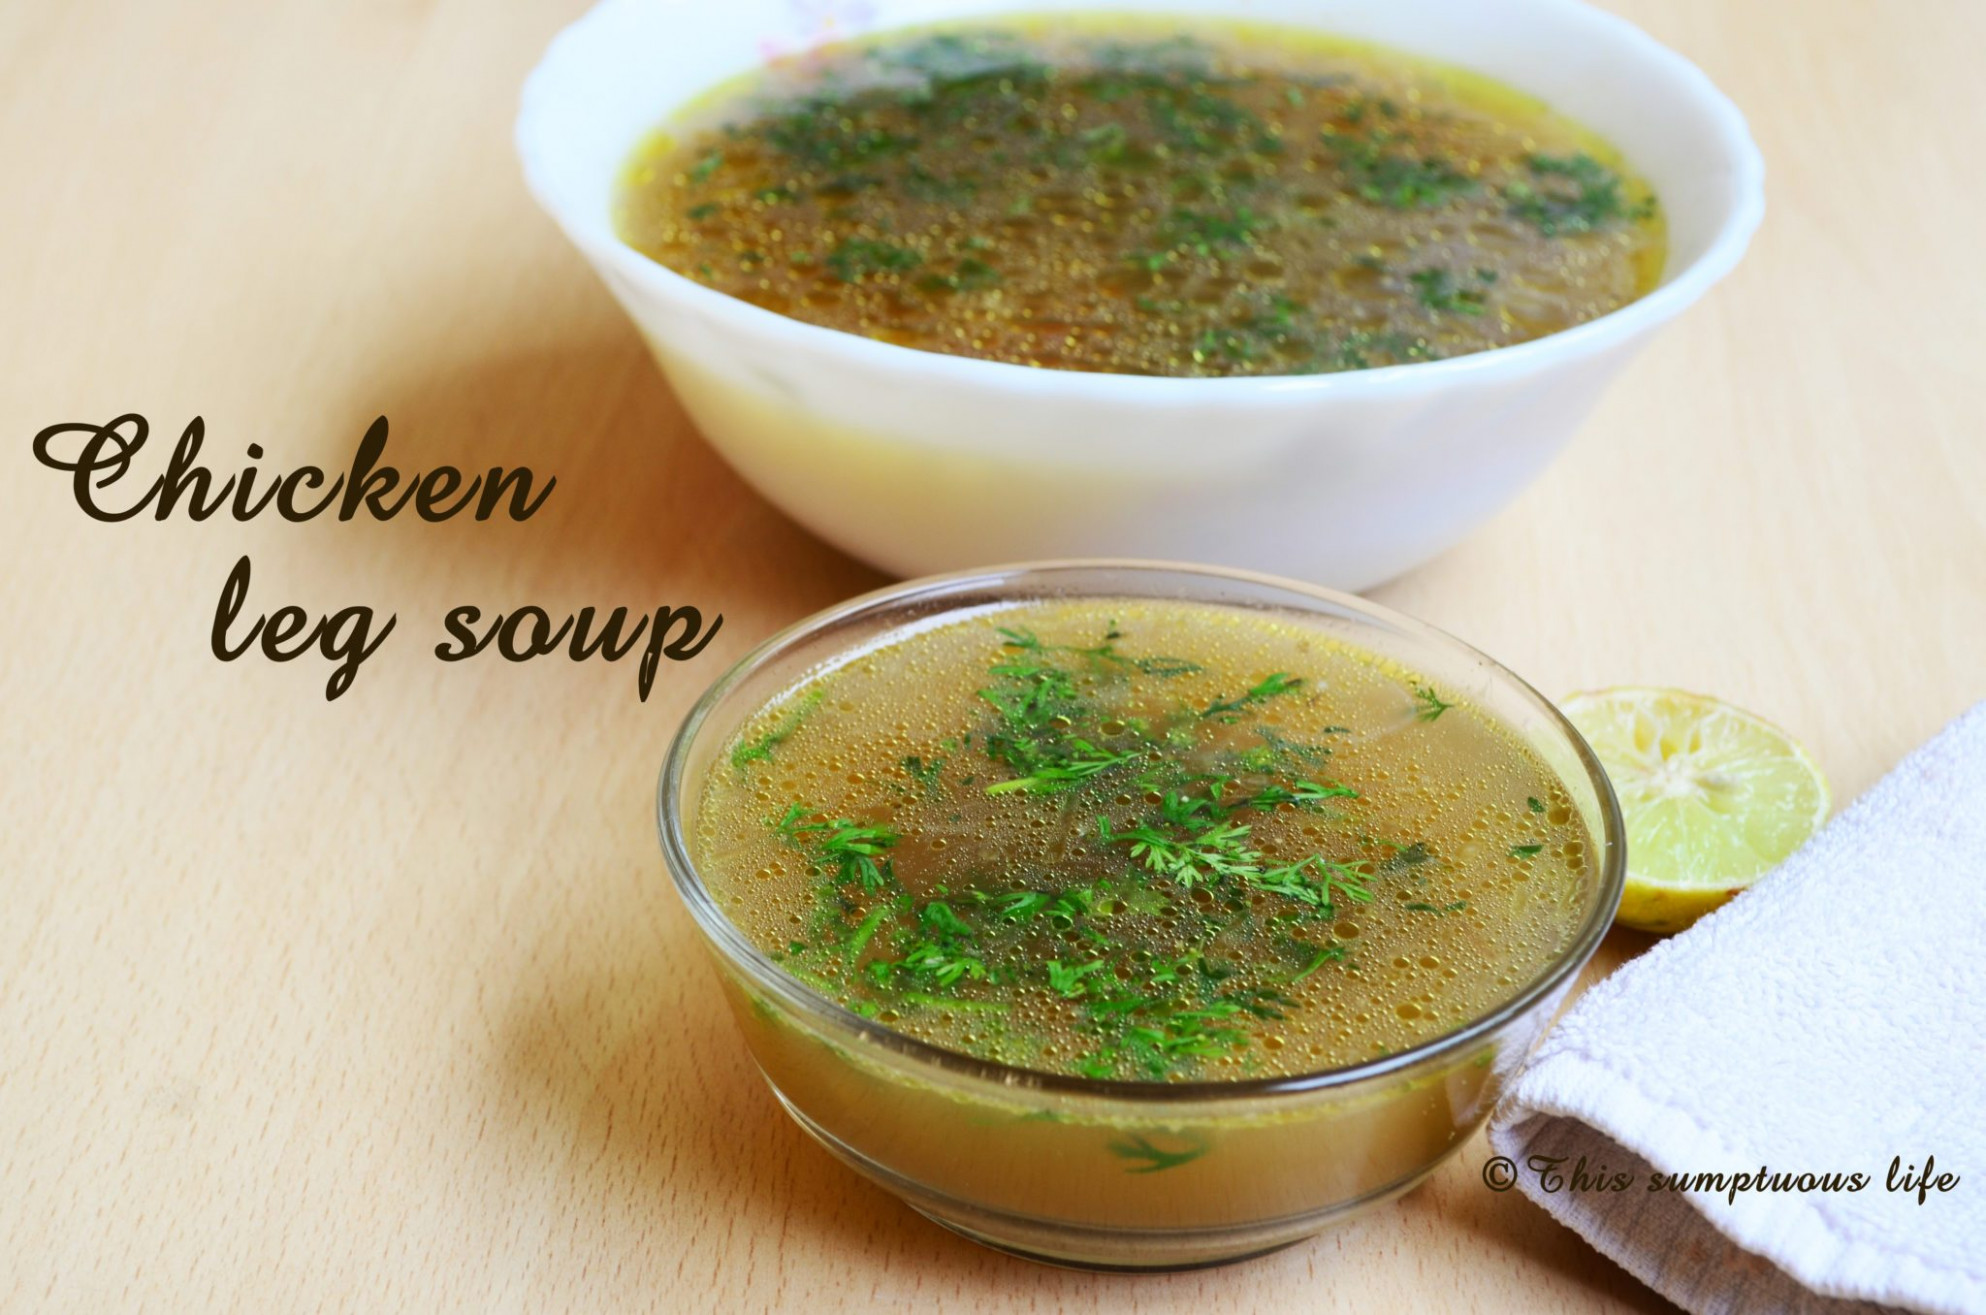 Chicken leg soup | Chicken clear soup | This sumptuous life - chicken recipes video in kannada